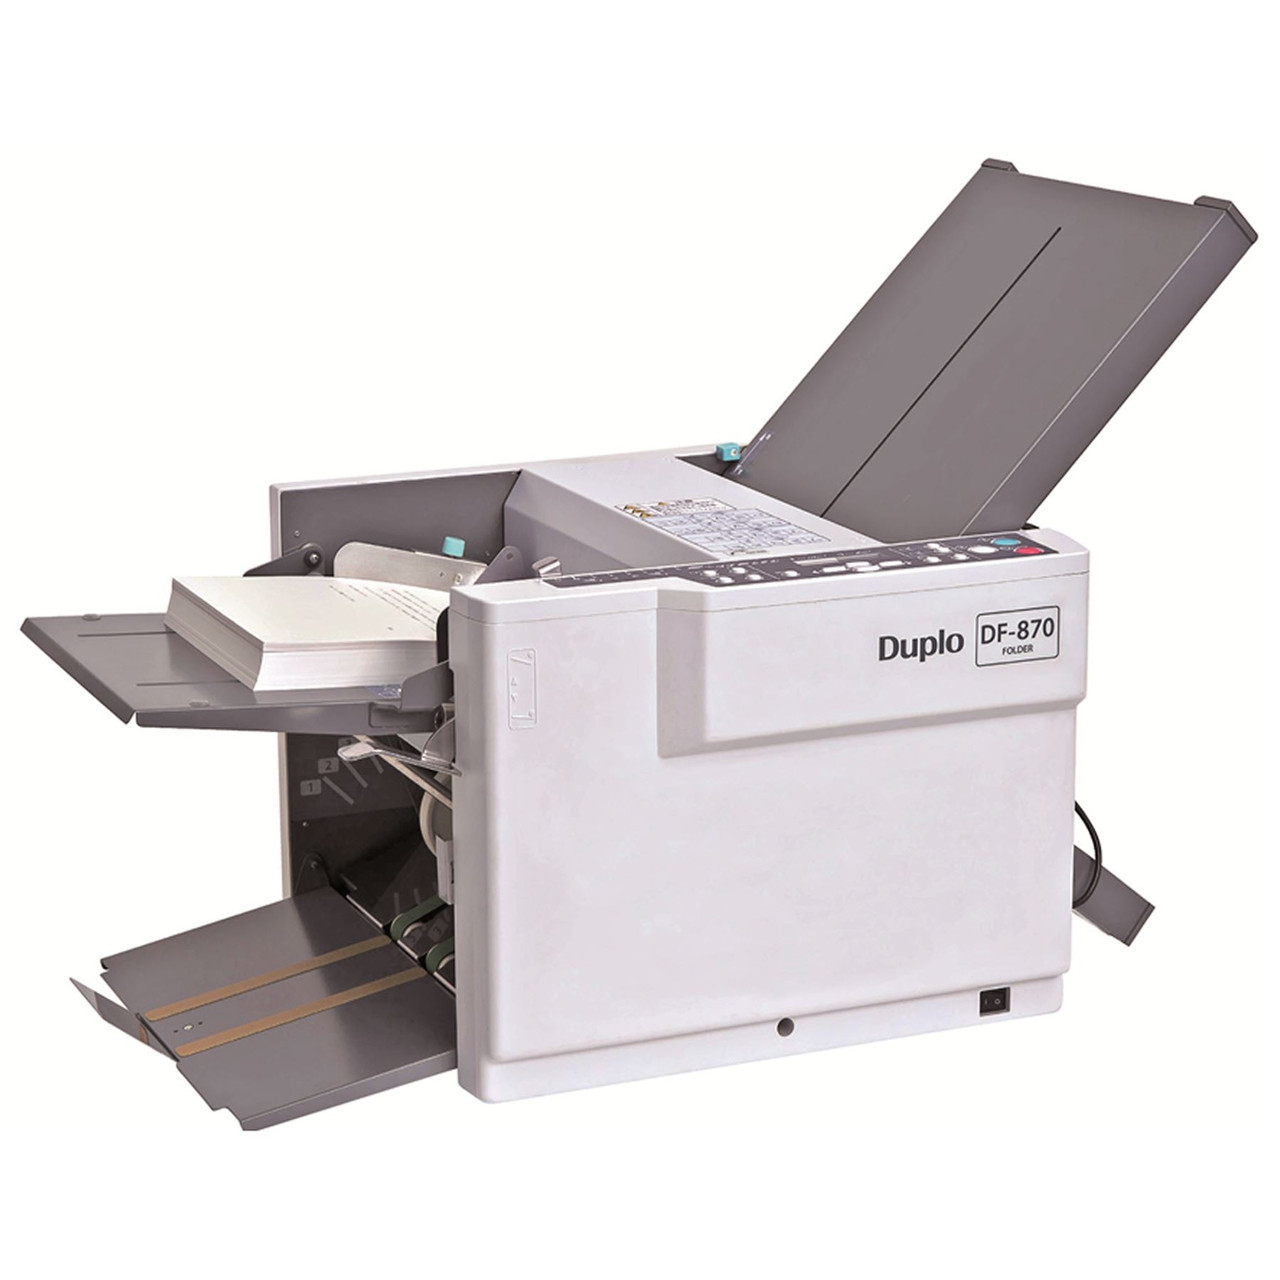 Duplo DF-870 - Automatic Paper / Letter Folding Machine